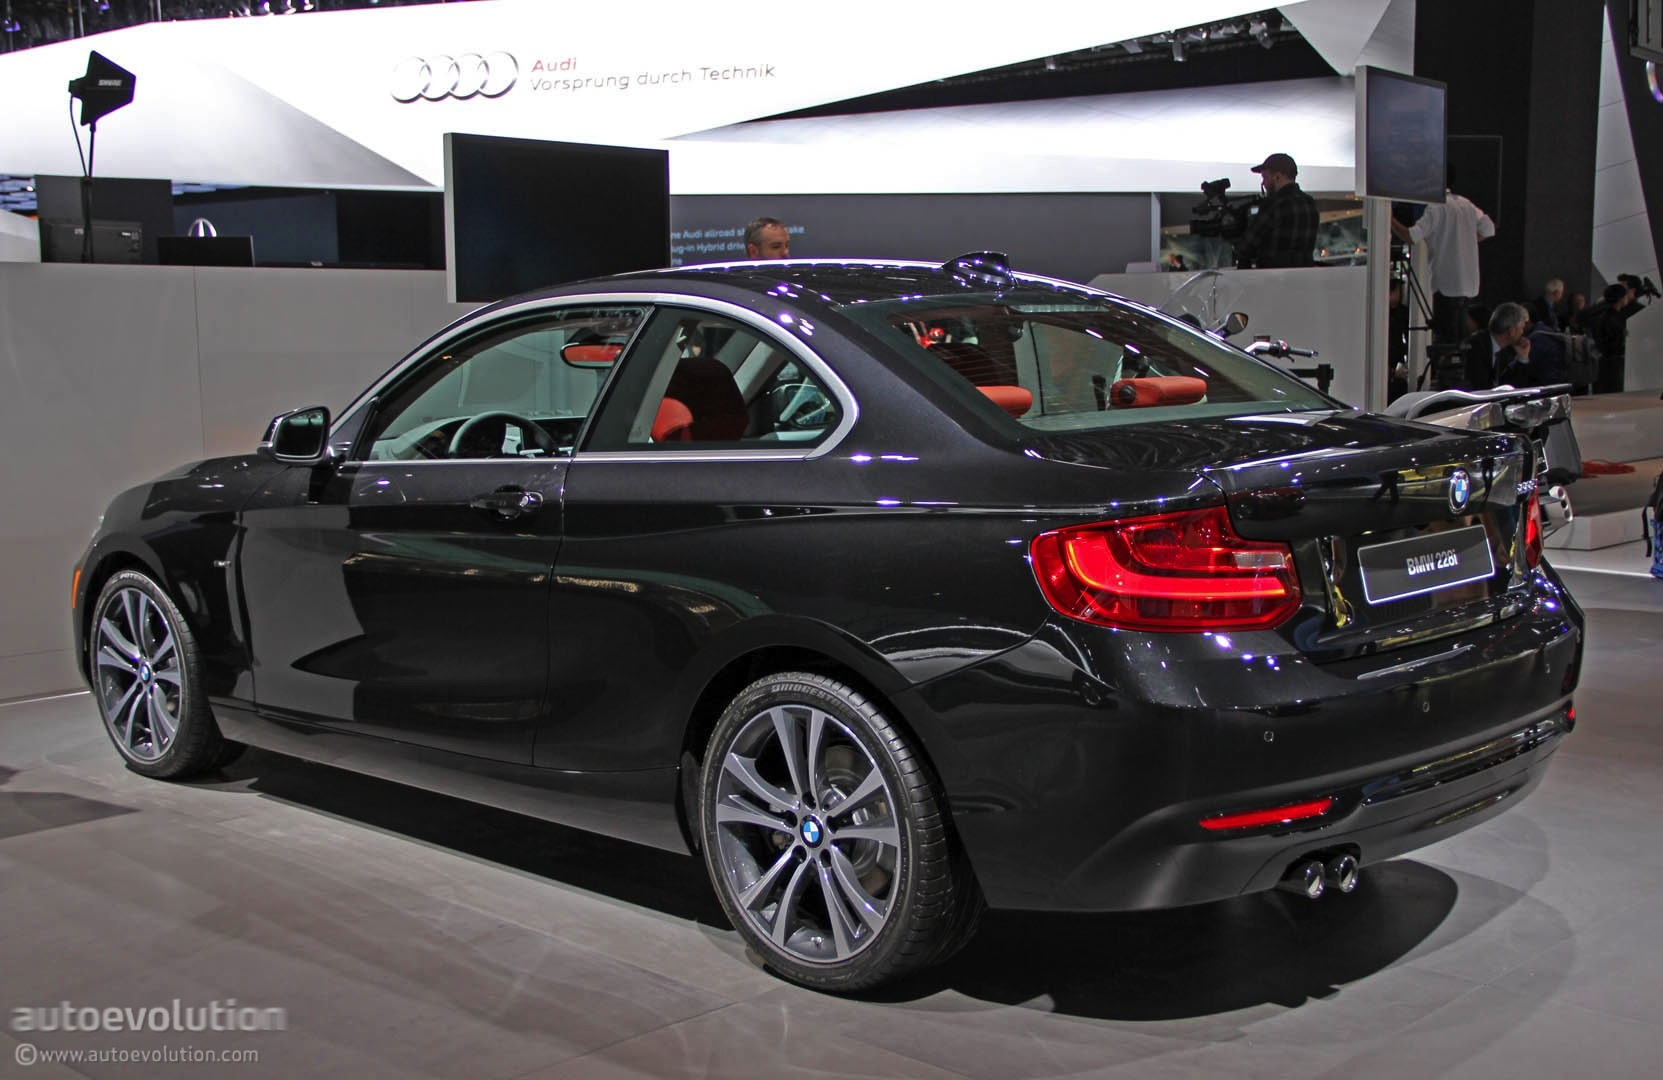 New Series Coupe Is A True BMW In Detroit Live Photos - 228i bmw